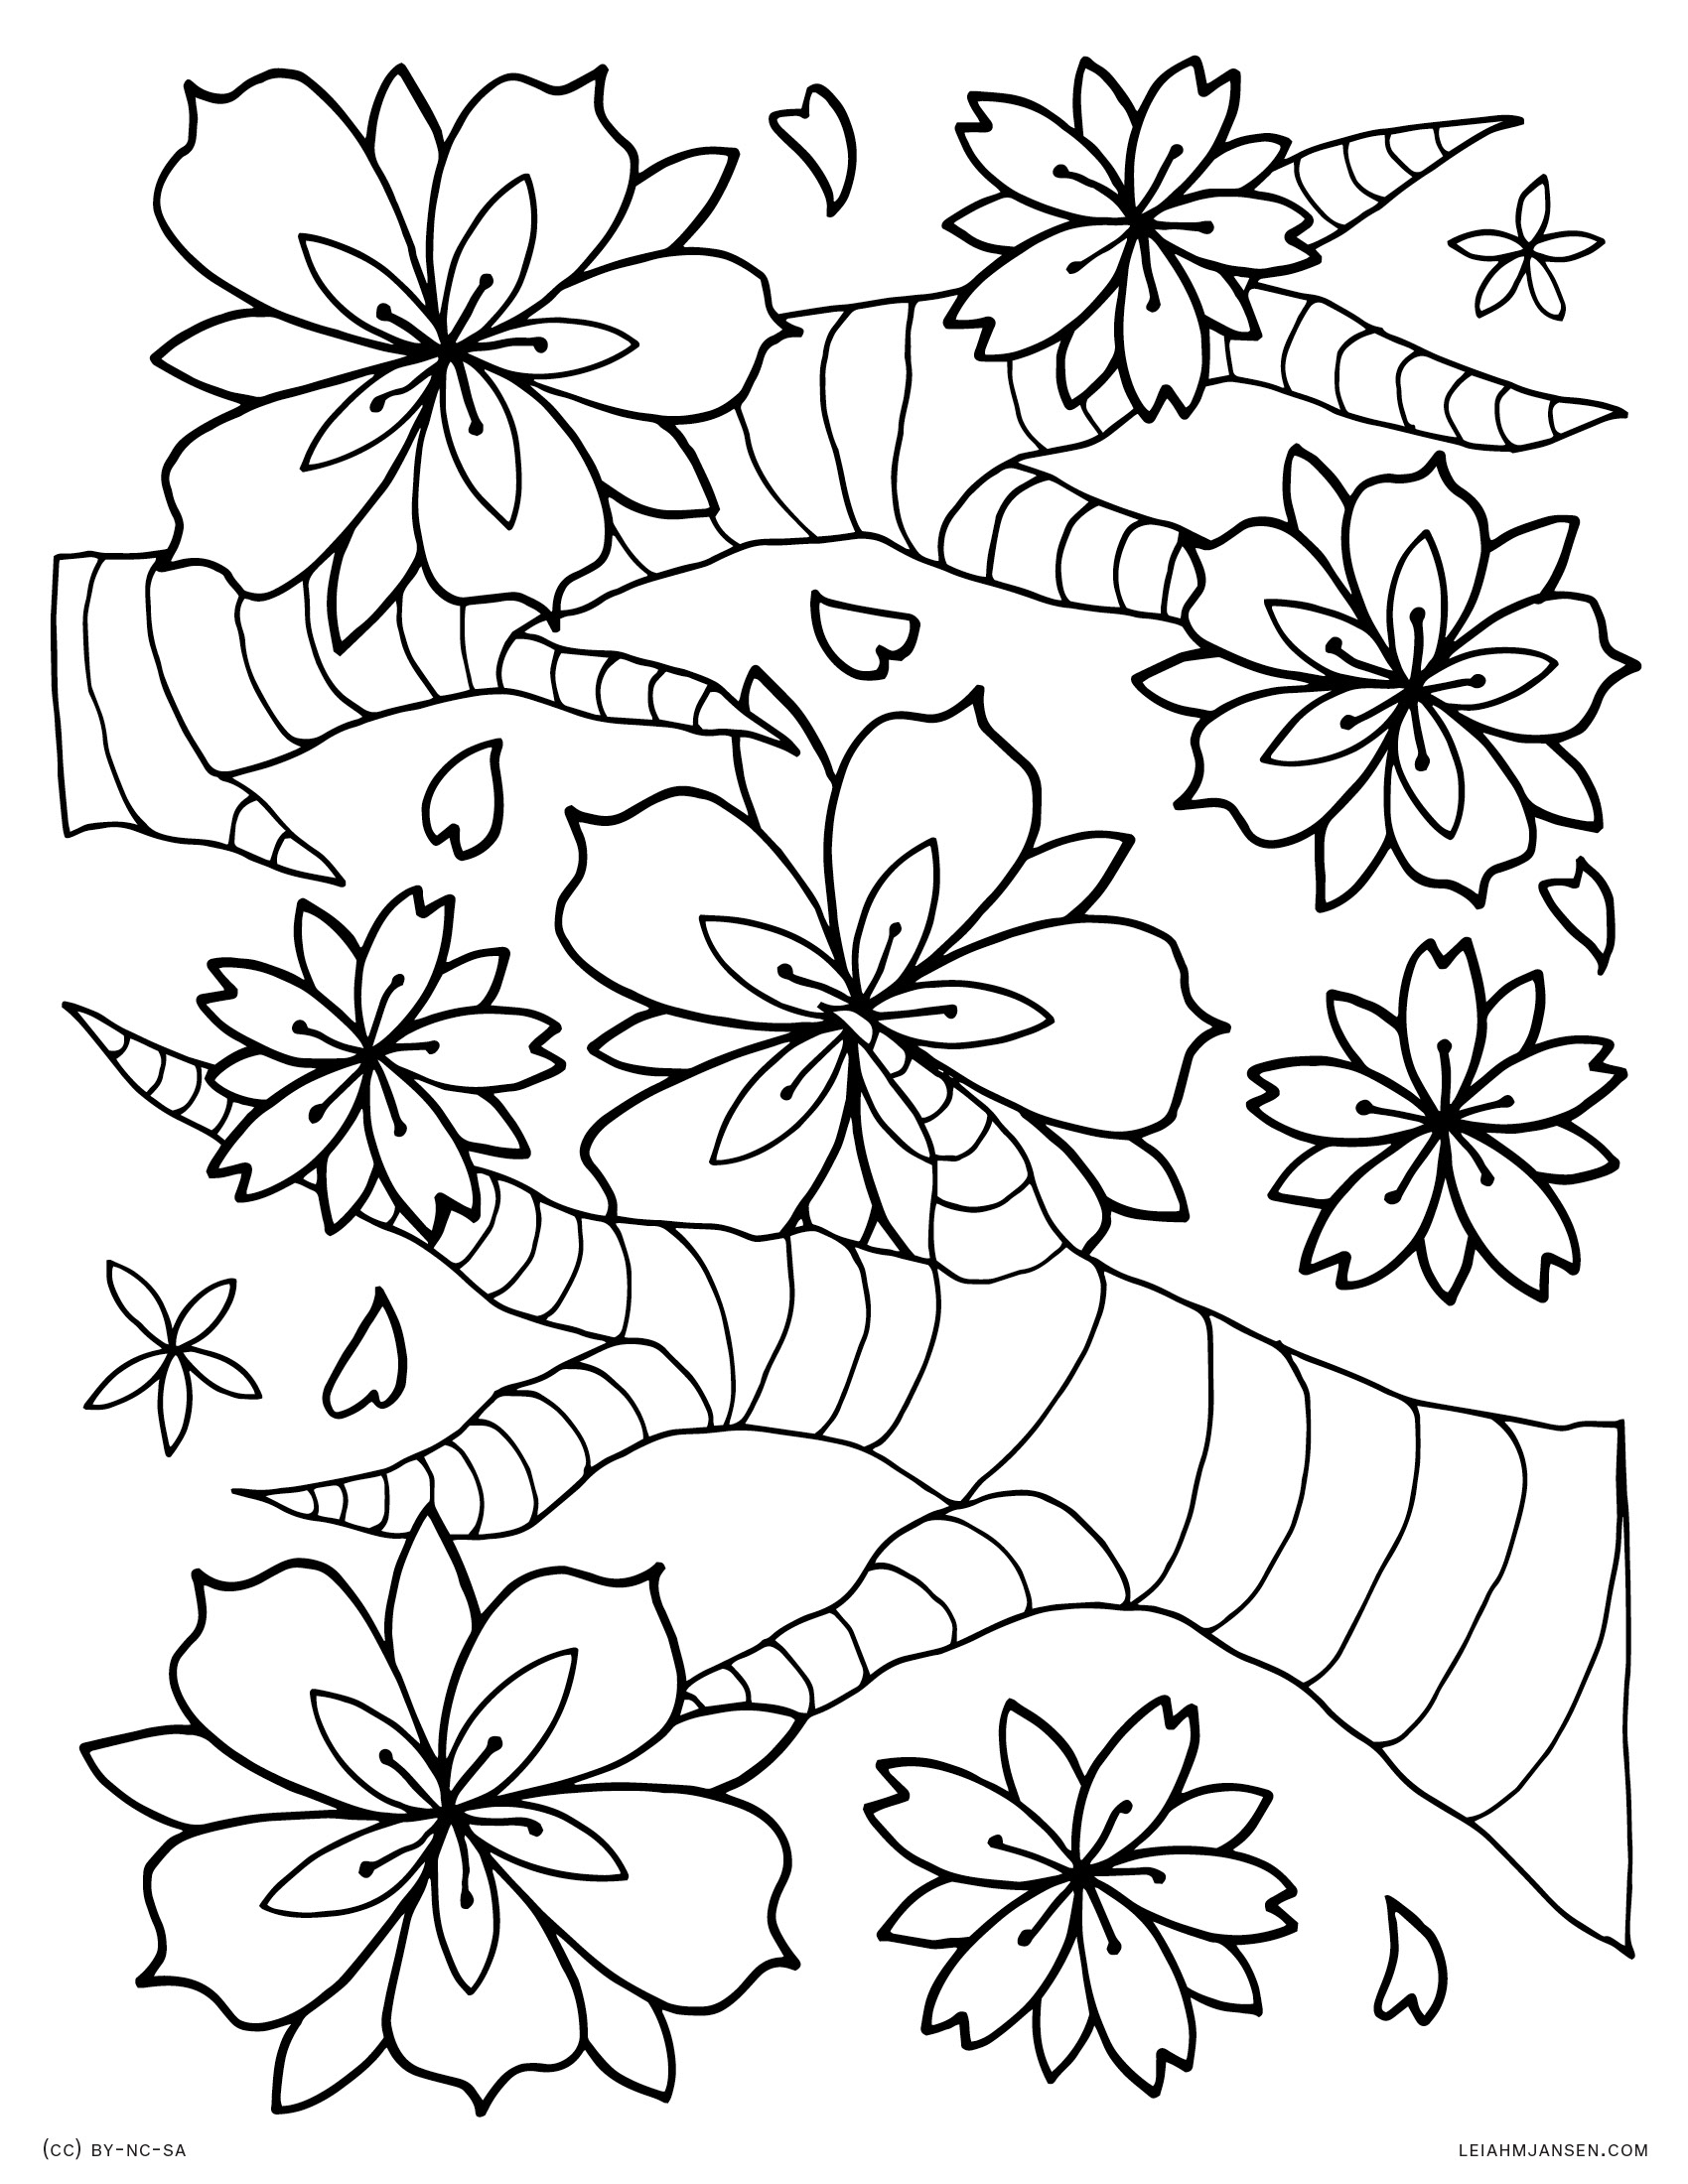 cherry blossom coloring pages cherry blossom coloring pages coloring home cherry coloring blossom pages